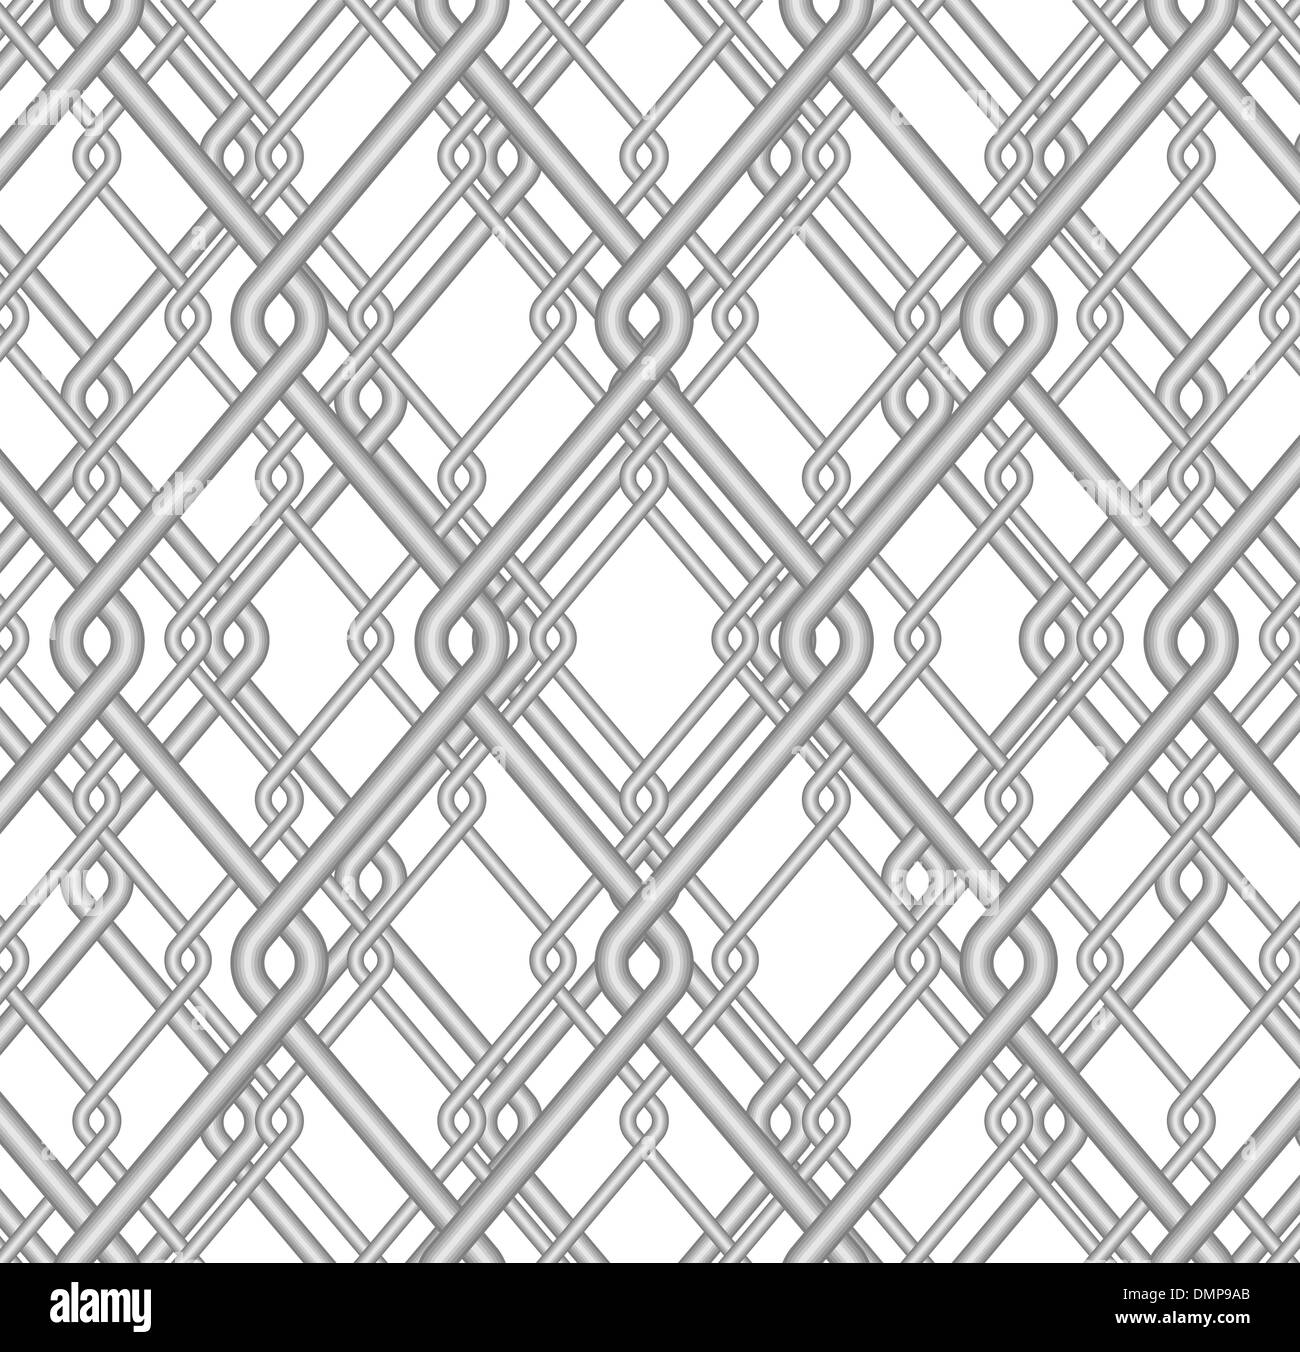 Galvanized Wire Mesh Stock Vector Images - Alamy